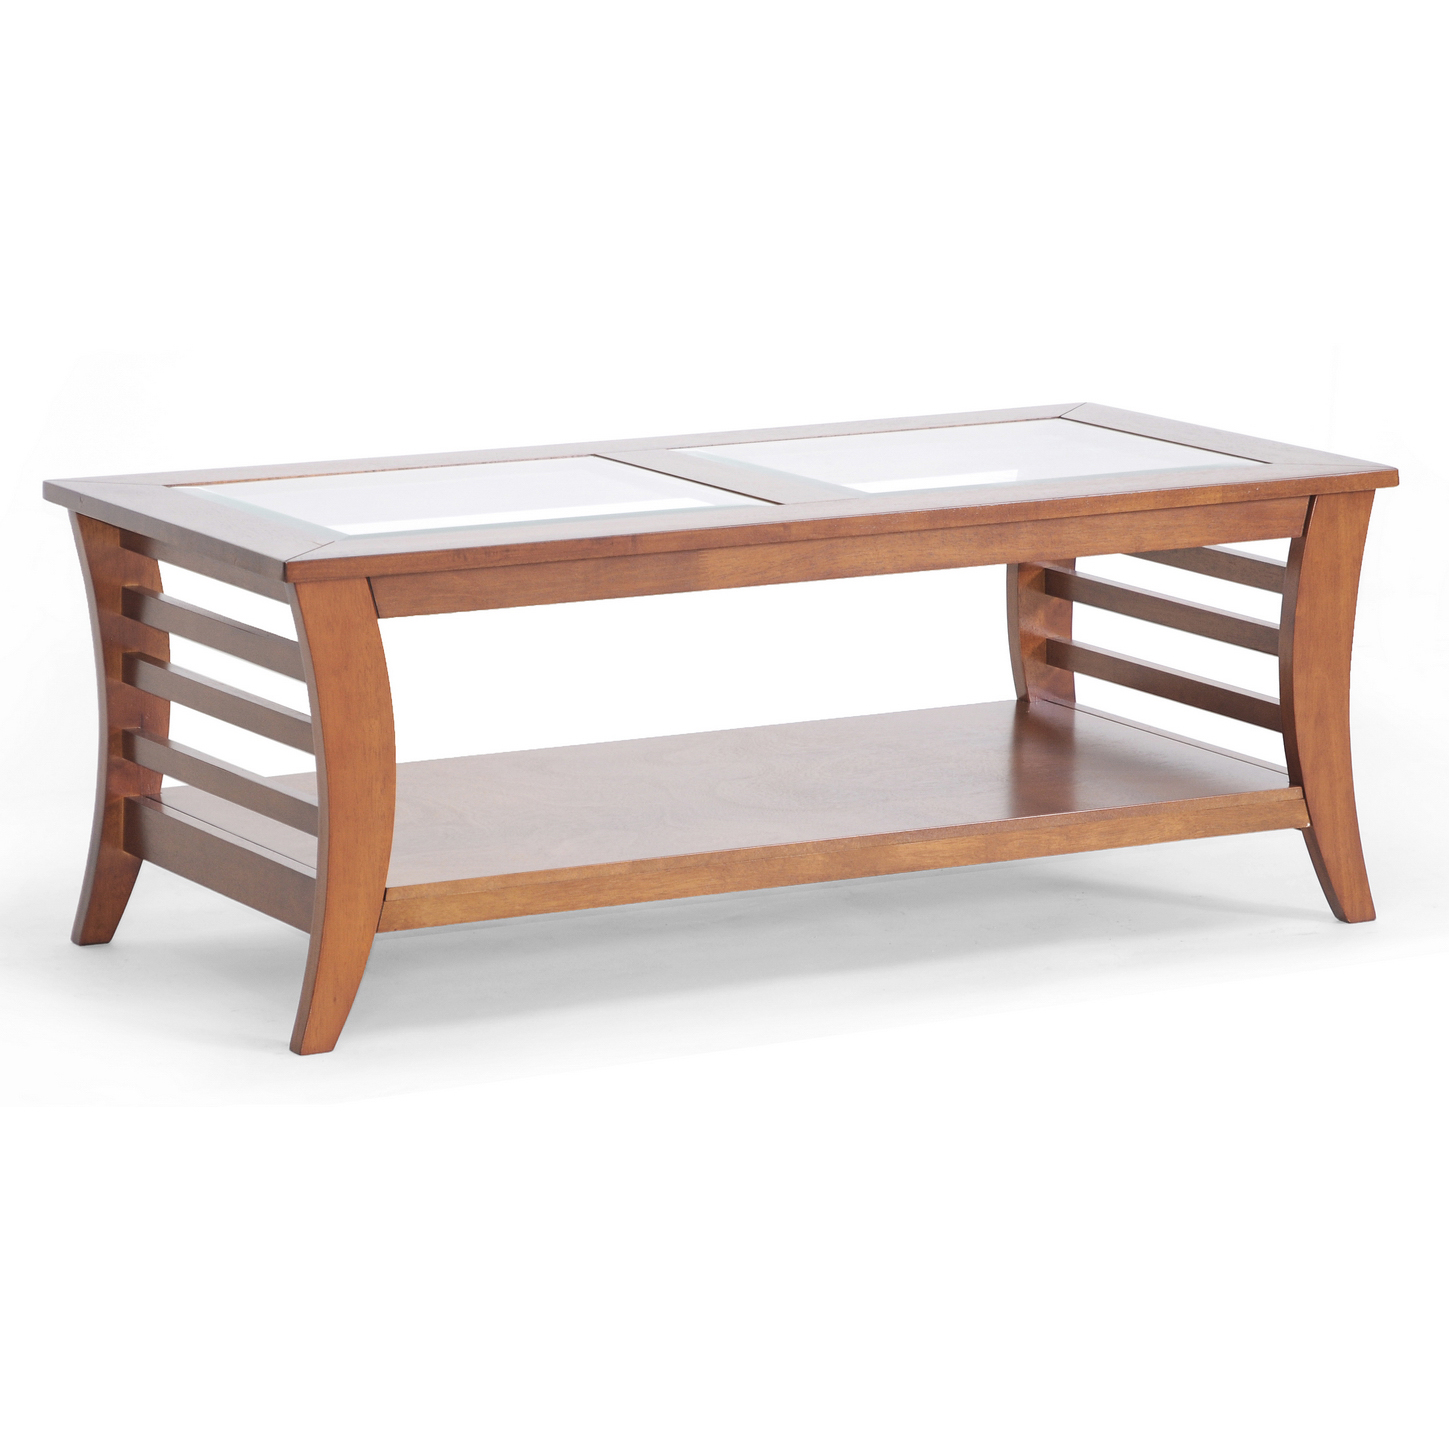 Allison Honey Brown Wood Modern Coffee Table With Glass Inlay By Wholesale Interiors In Coffee